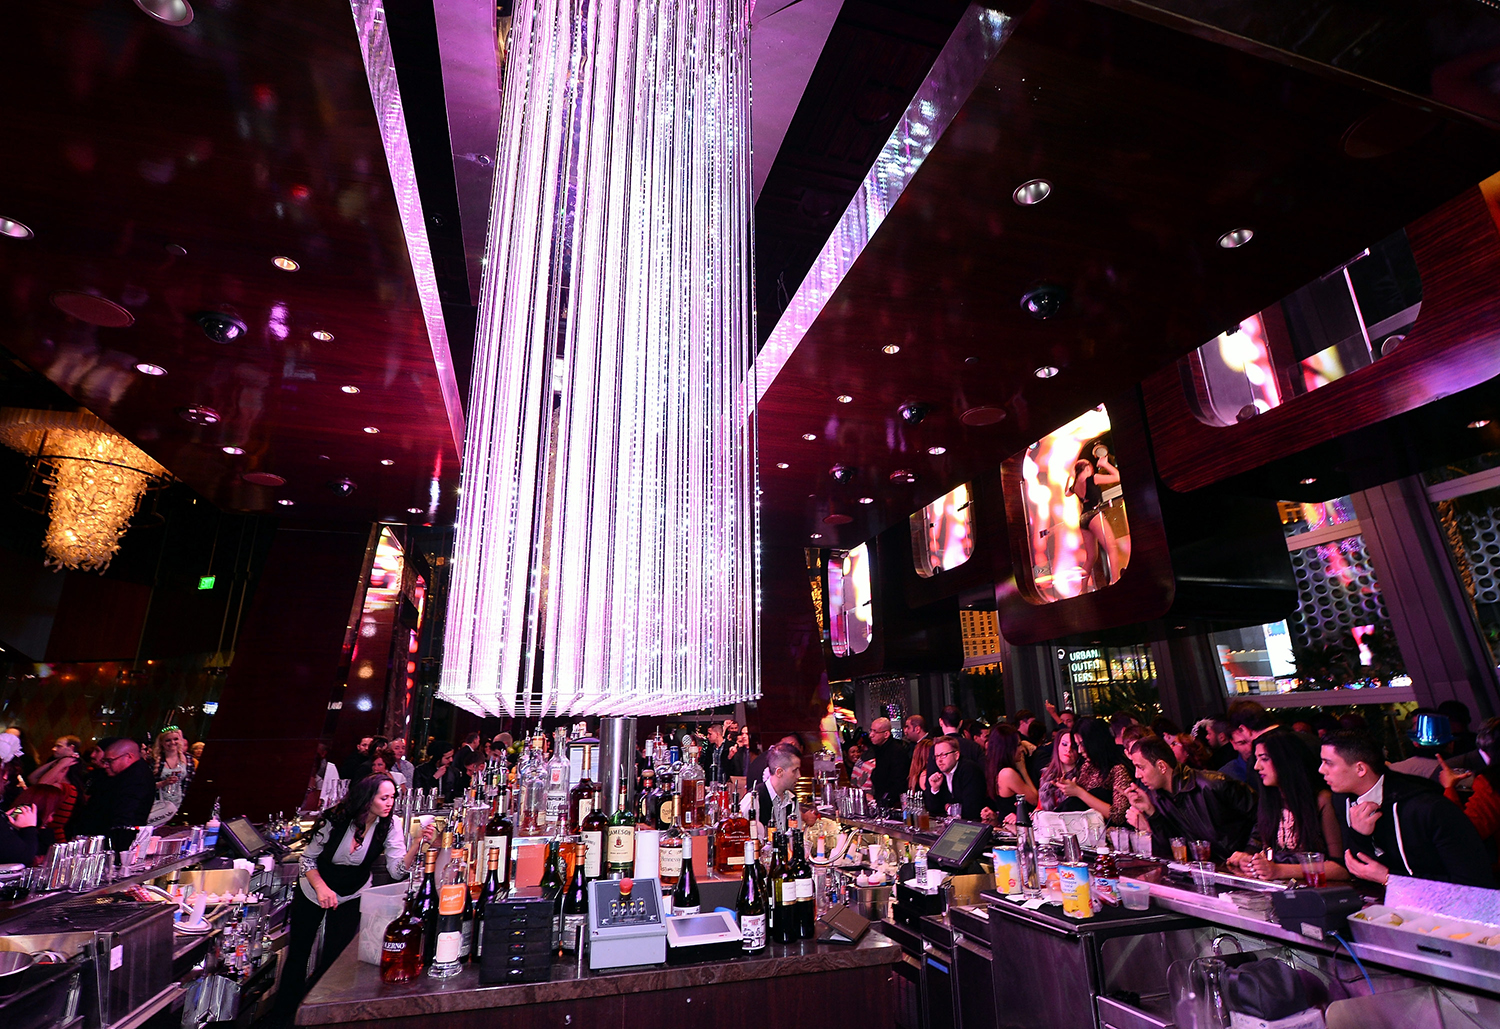 A general view during a New Year's Eve celebration at BOND inside The Cosmopolitan of Las Vegas on January 1, 2014 in Las Vegas, Nevada. (Ethan Miller/WireImage)